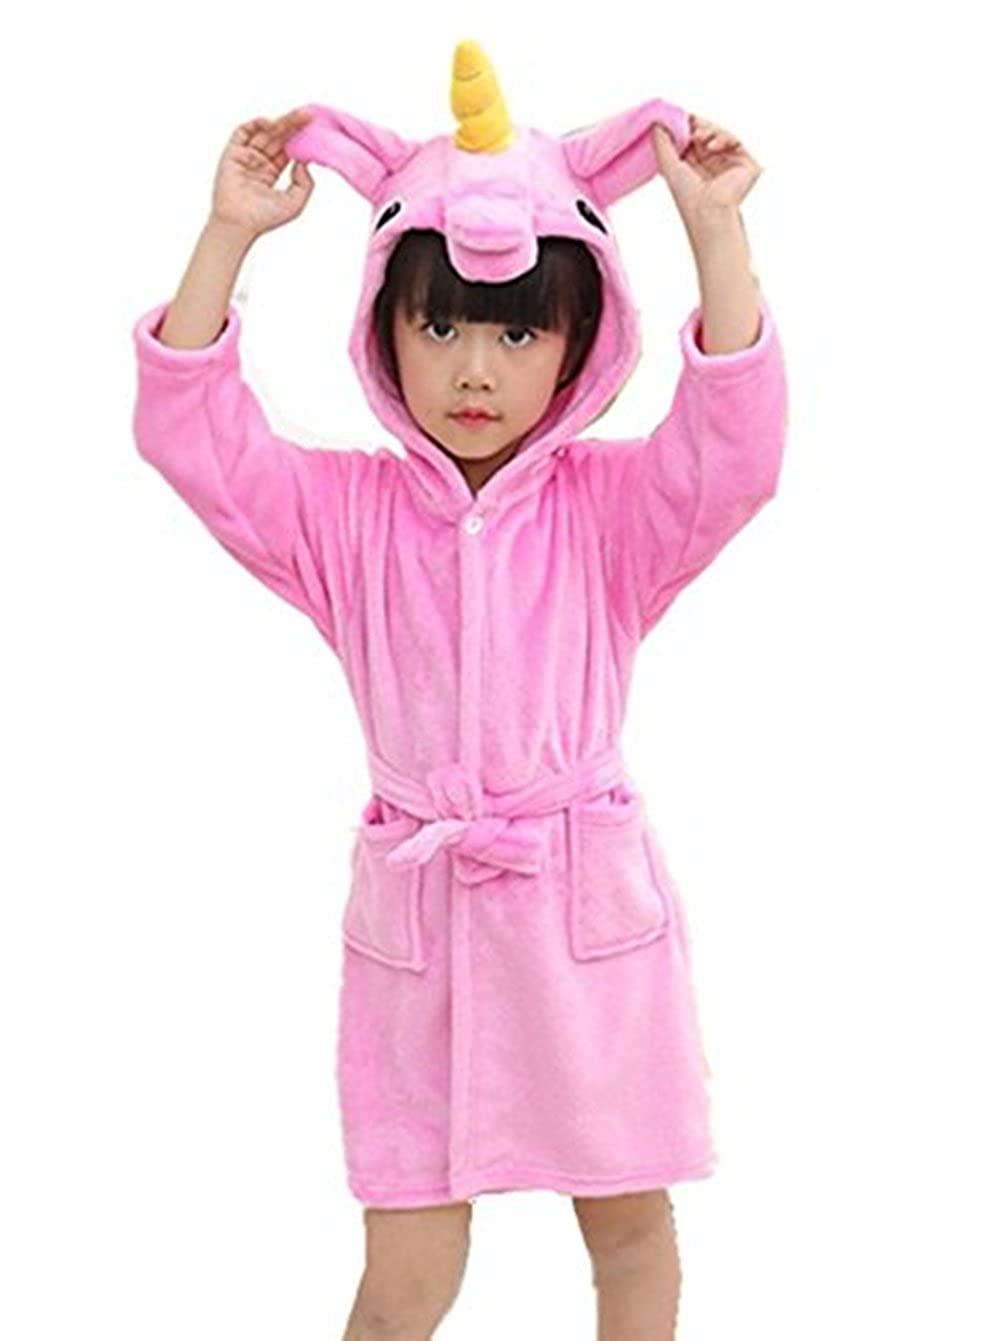 Kid's Unicorn Hooded Bathrobe Children Animal Pajamas Sleep Robe For Boys Girls Songsongbear